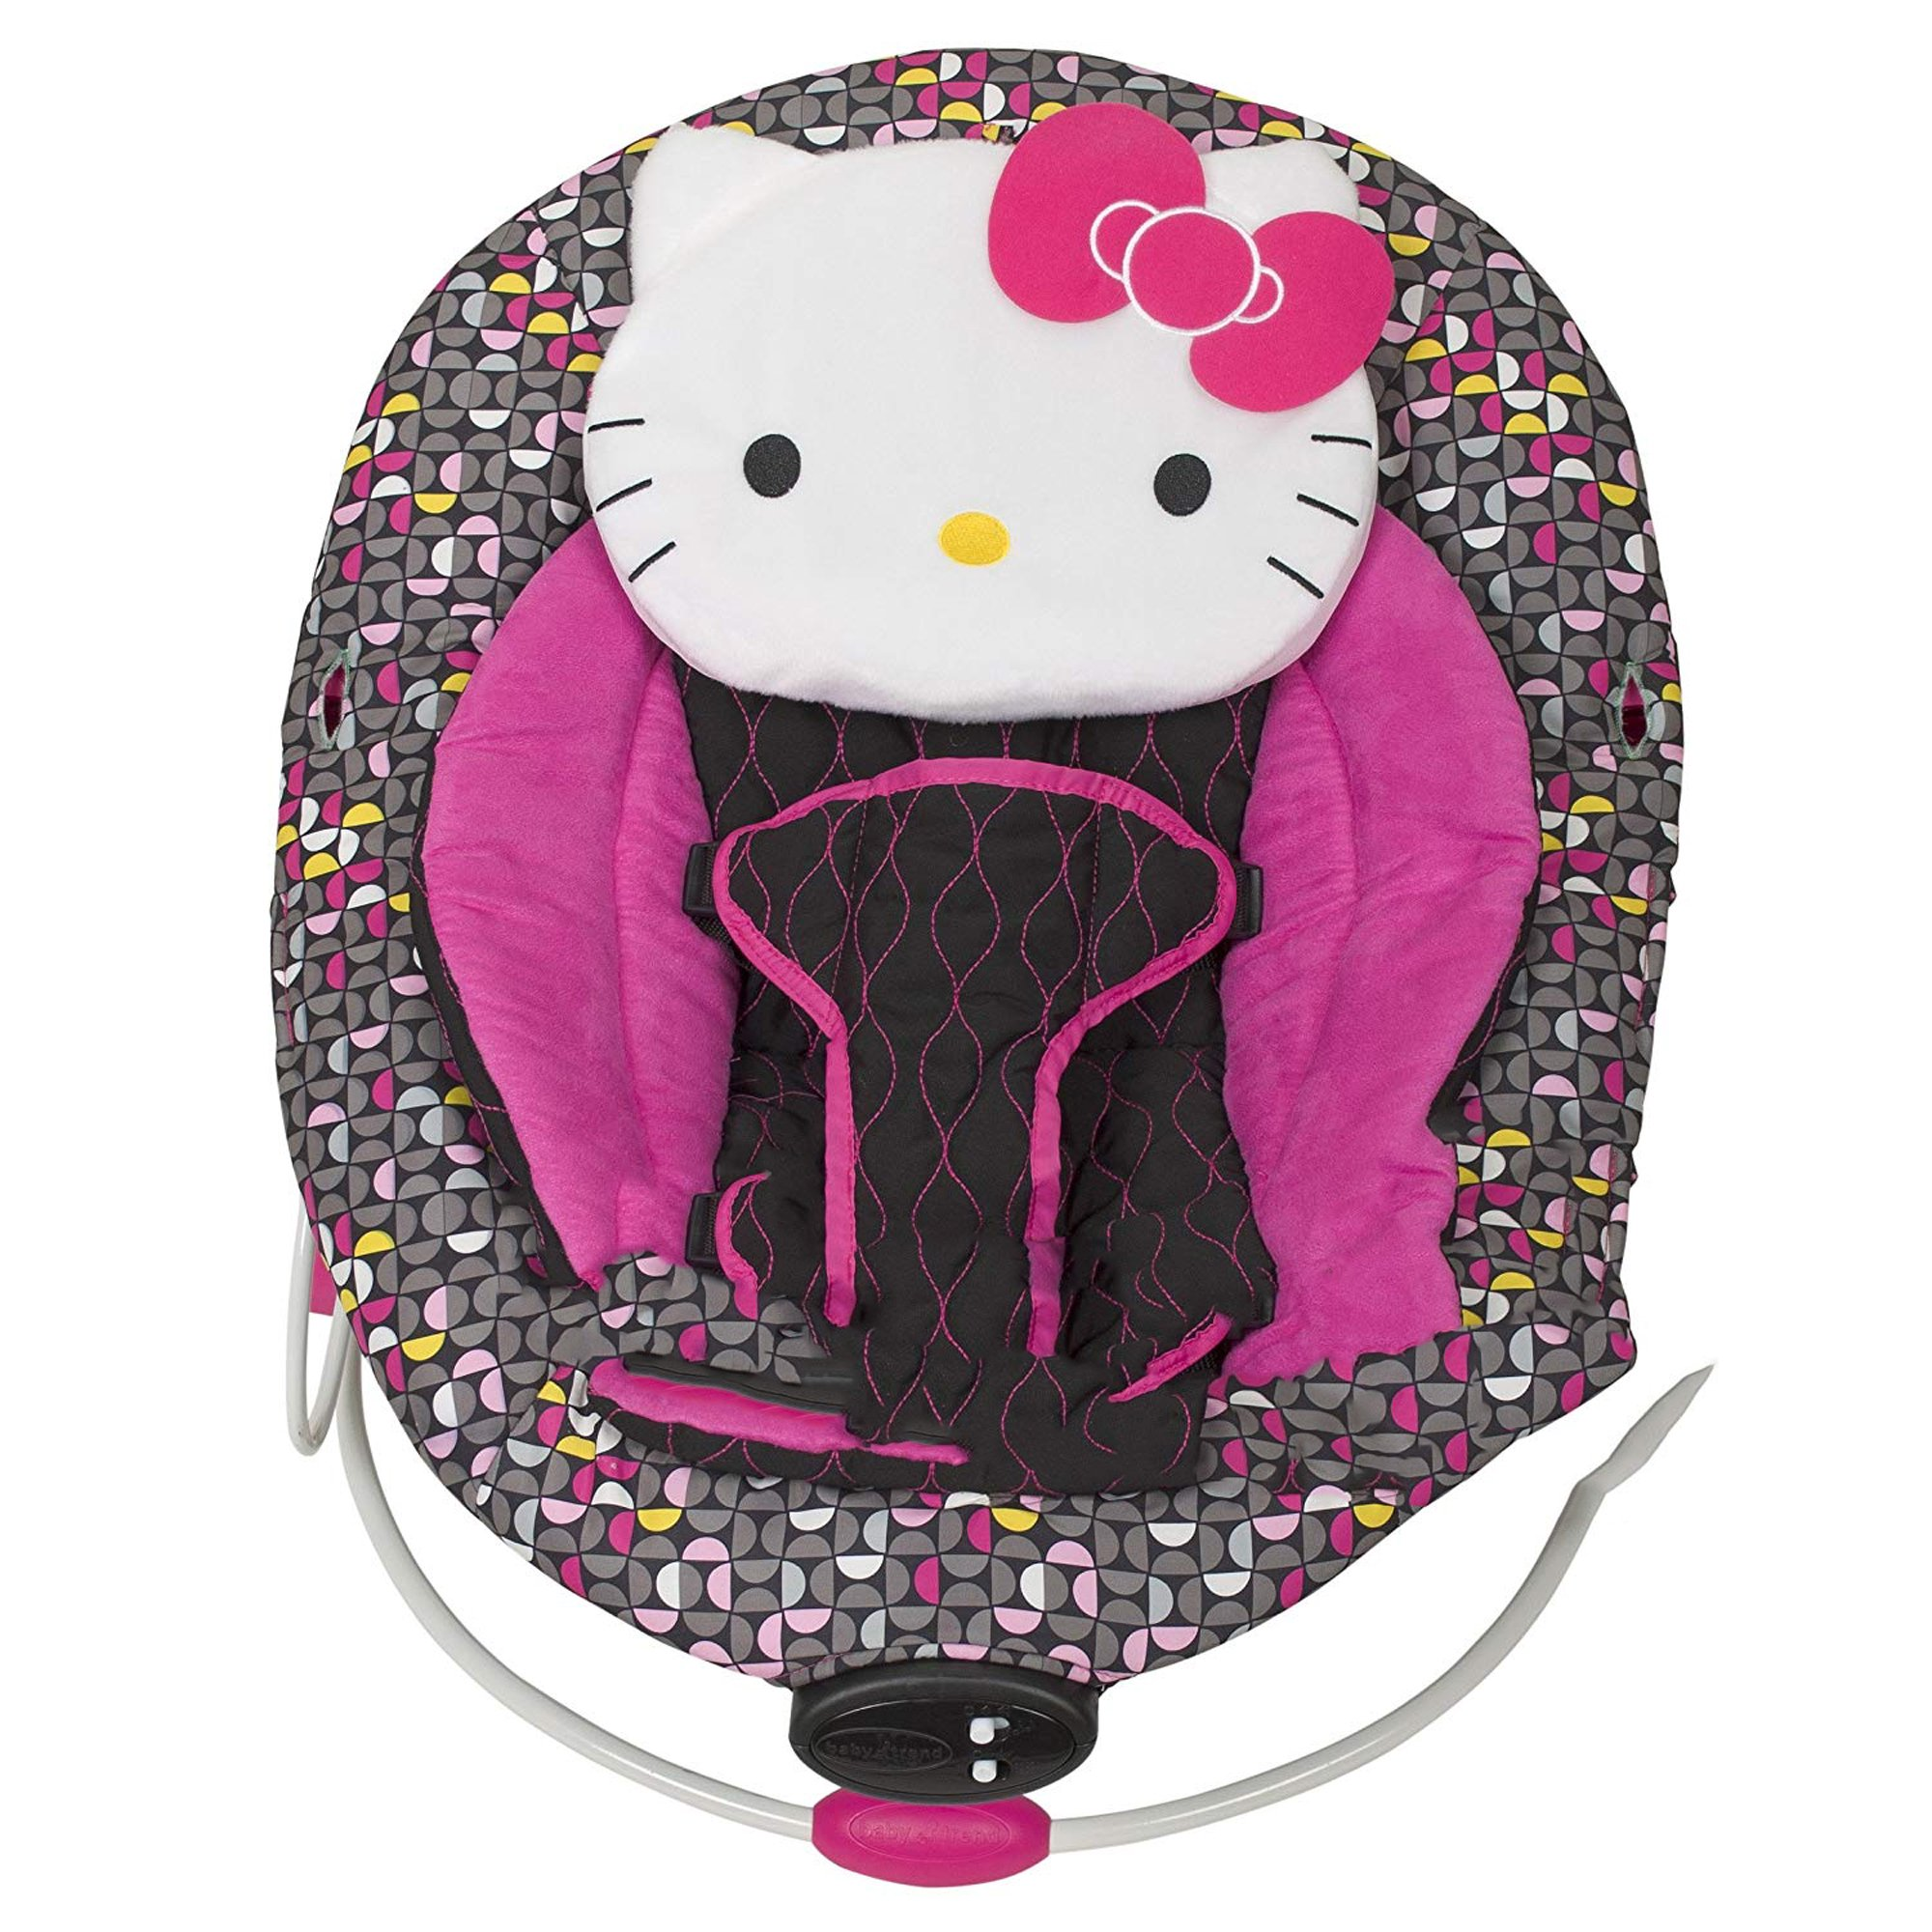 Baby Trend Cradle Bouncer Chair w/ 3 Point Safety Harness, Hello Kitty Pin Wheel